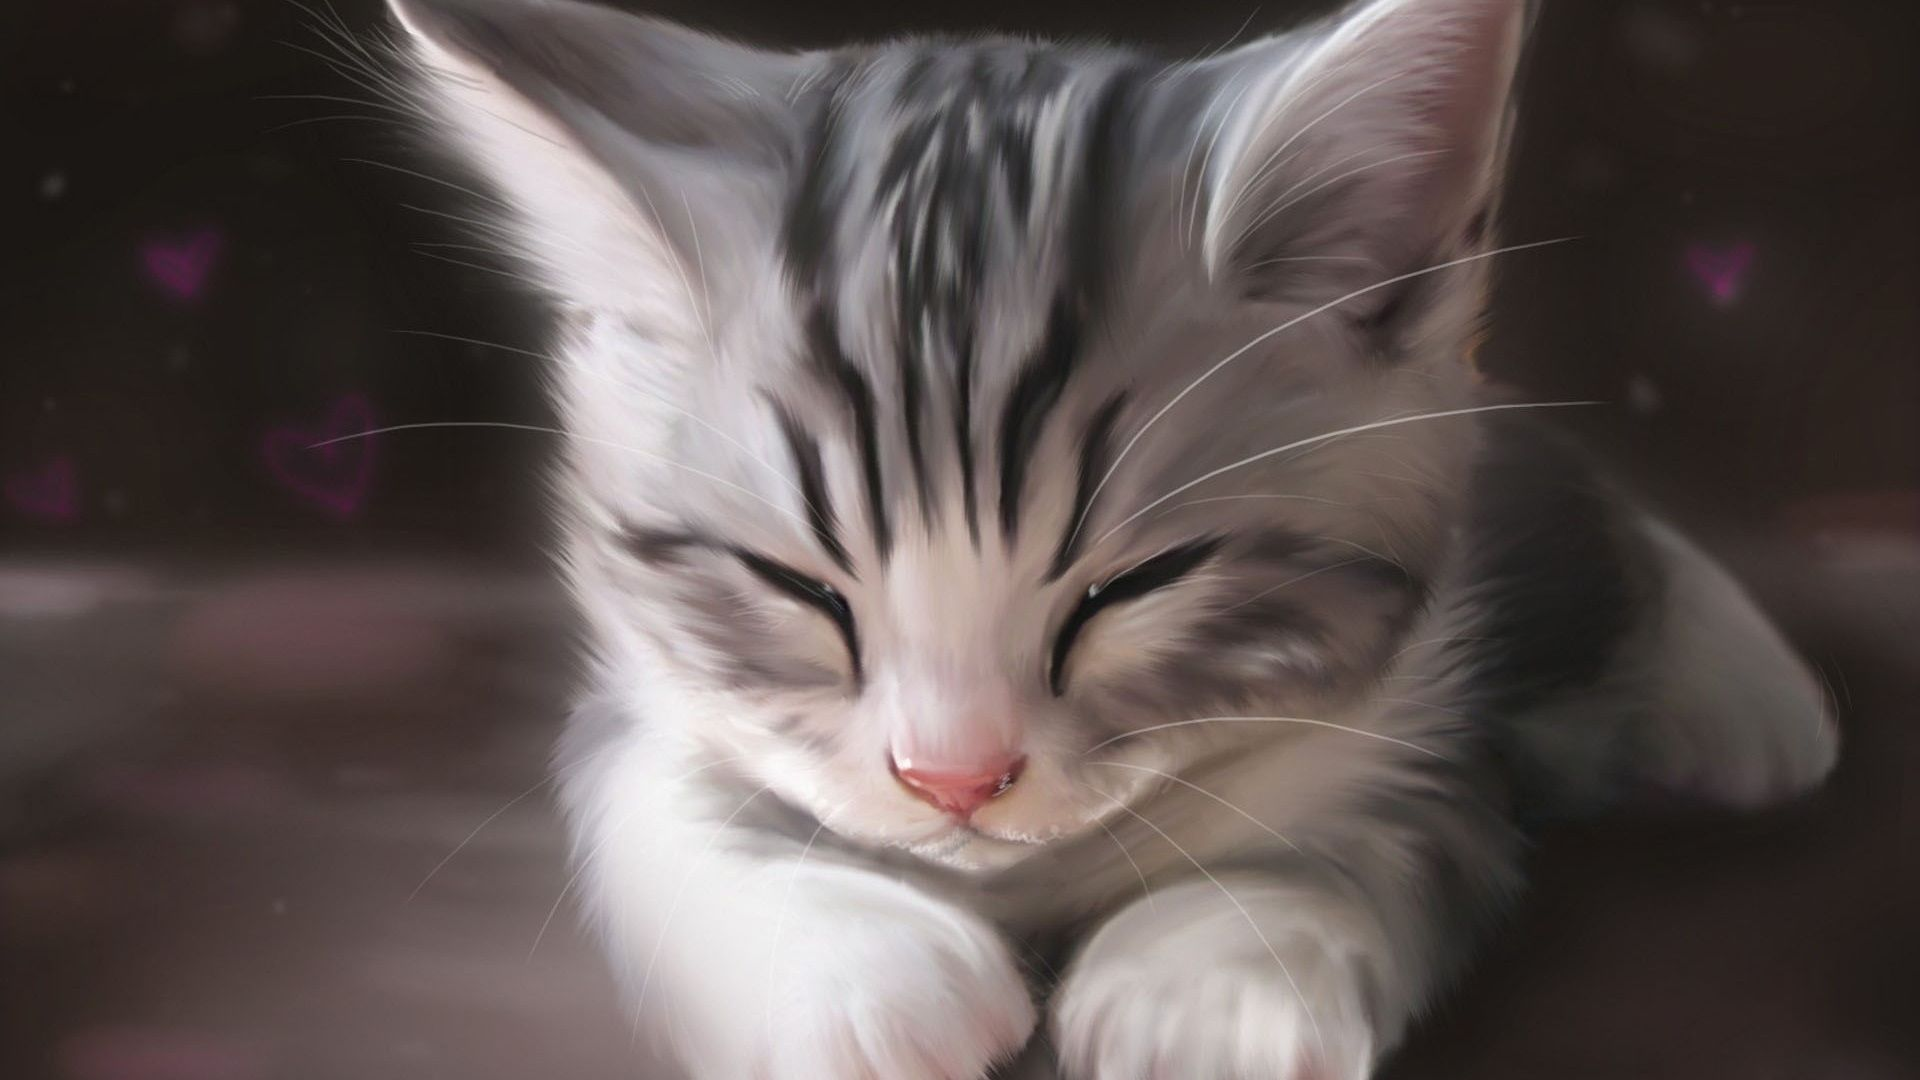 Art Original Drawings And More All By Me Sleeping Kitten Kittens Cutest Adorable Kittens Funny